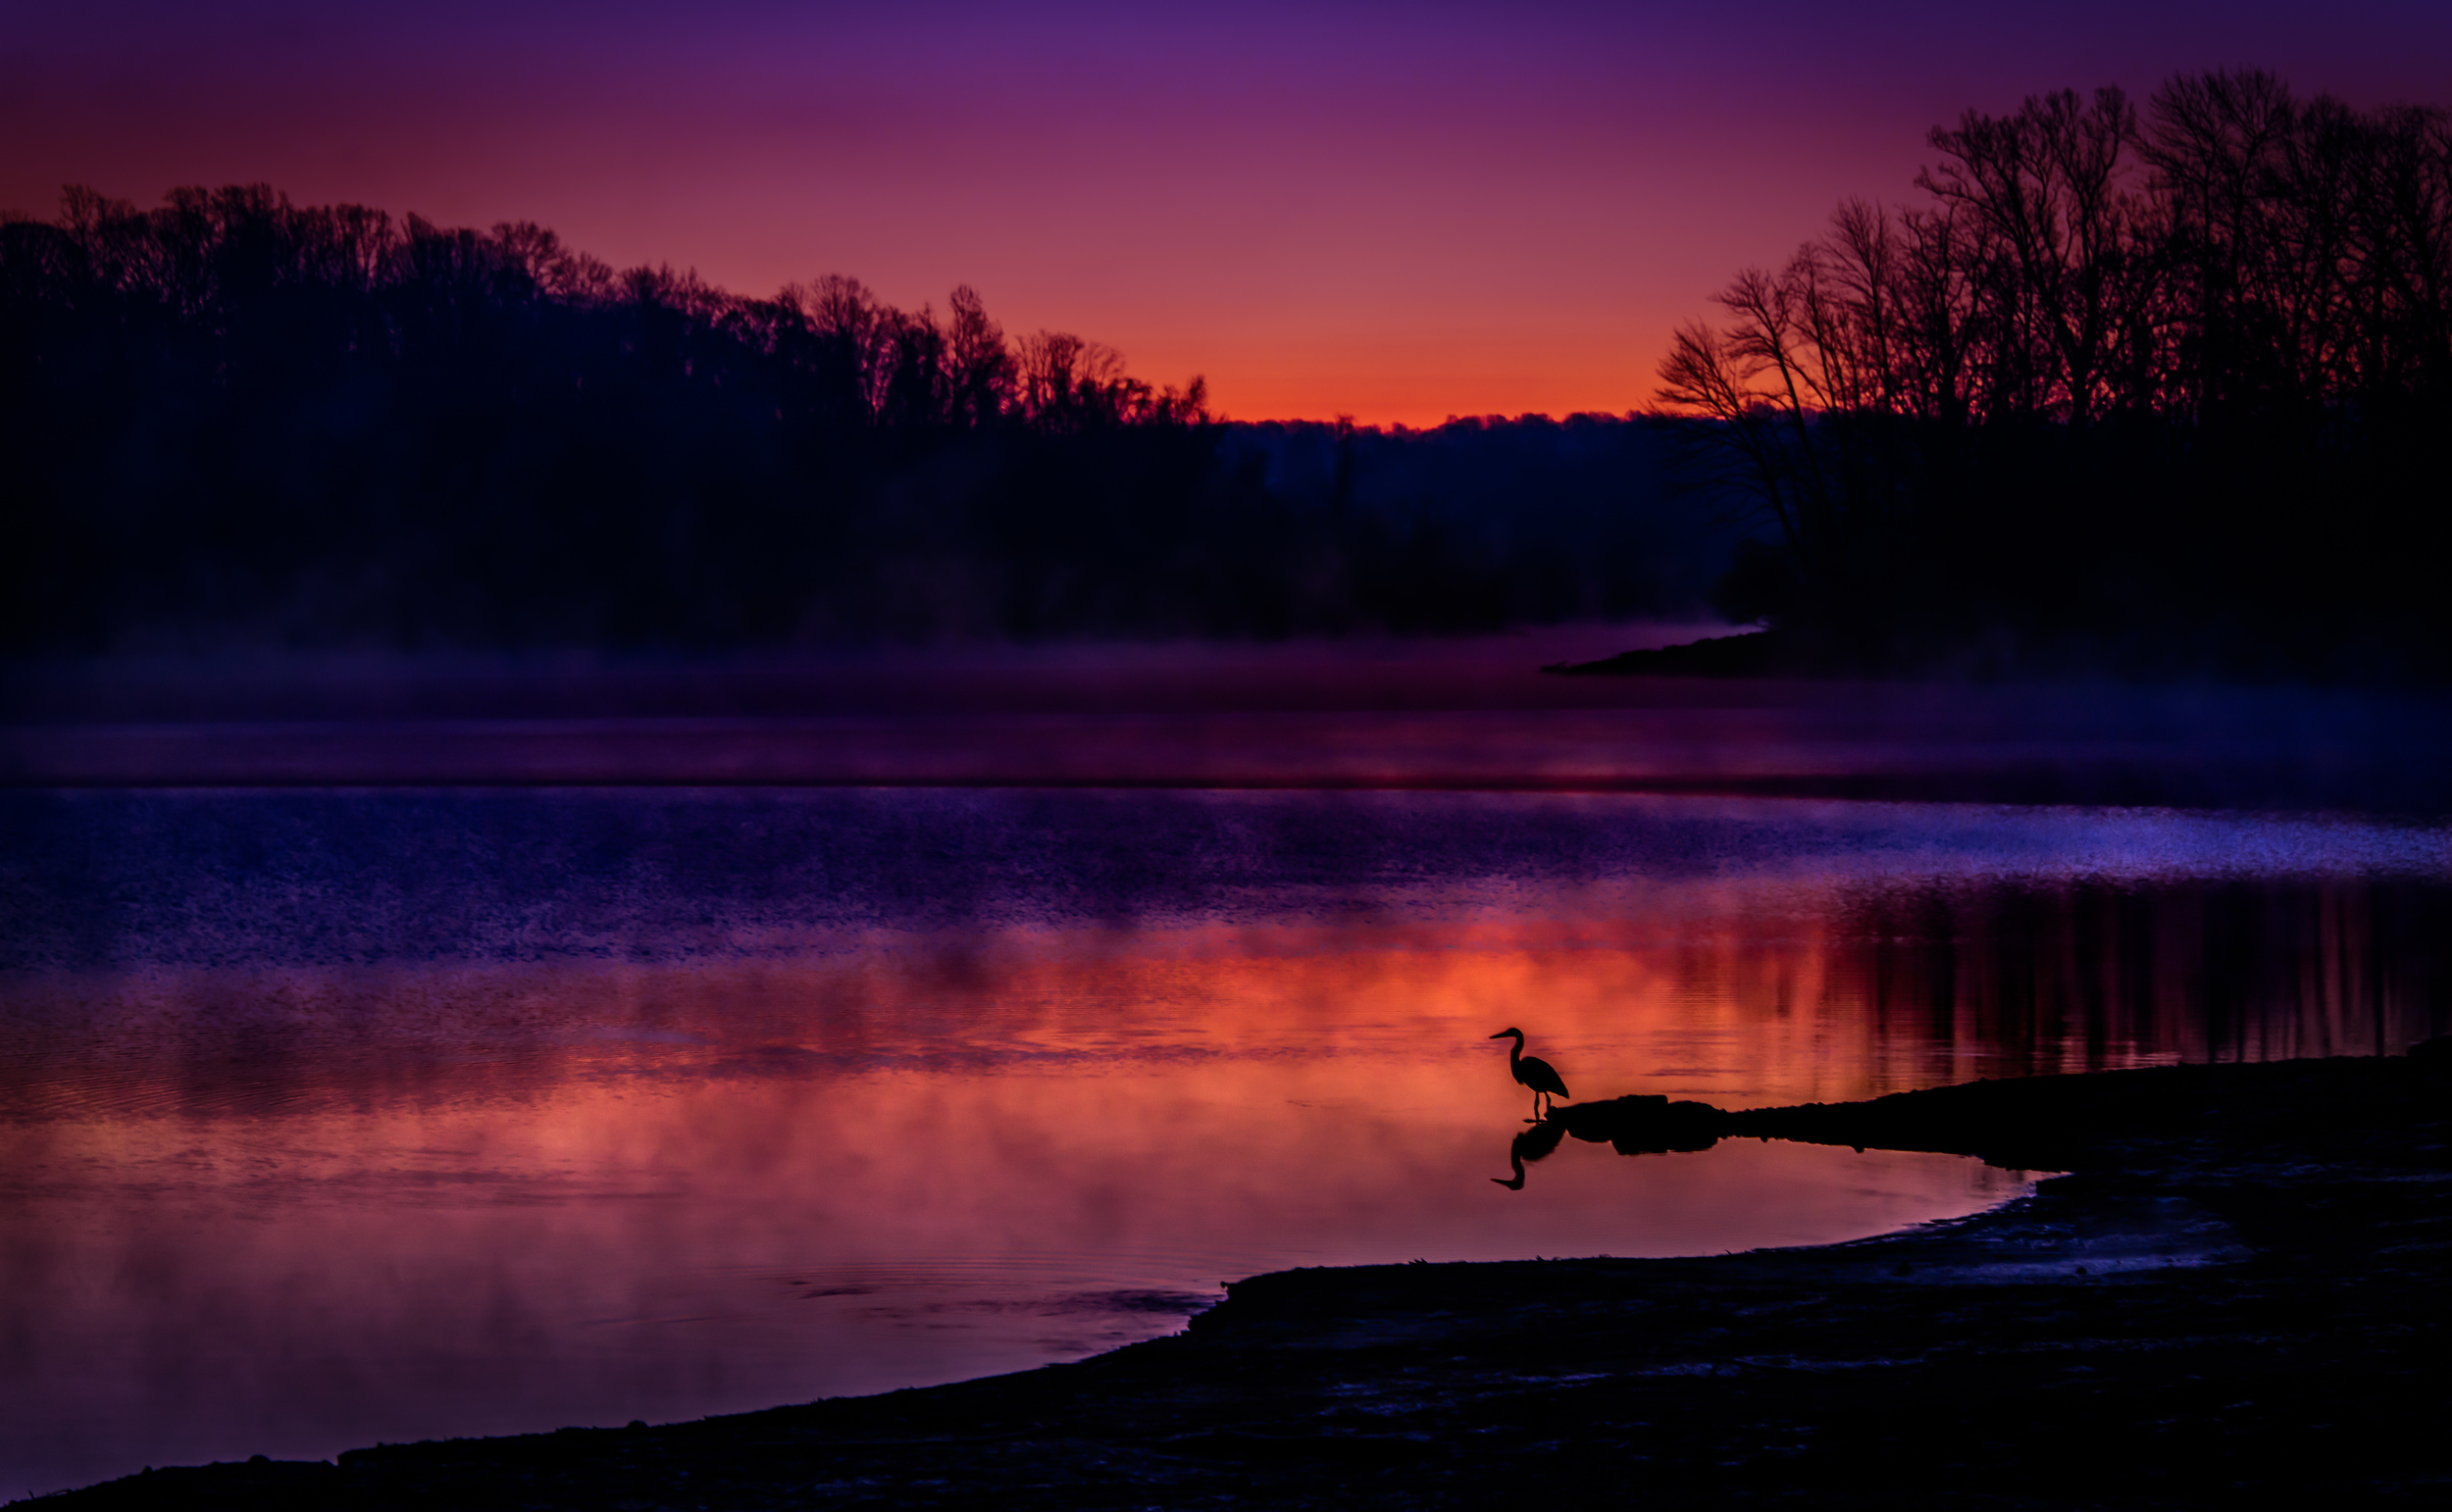 Morning Heron at Sunrise